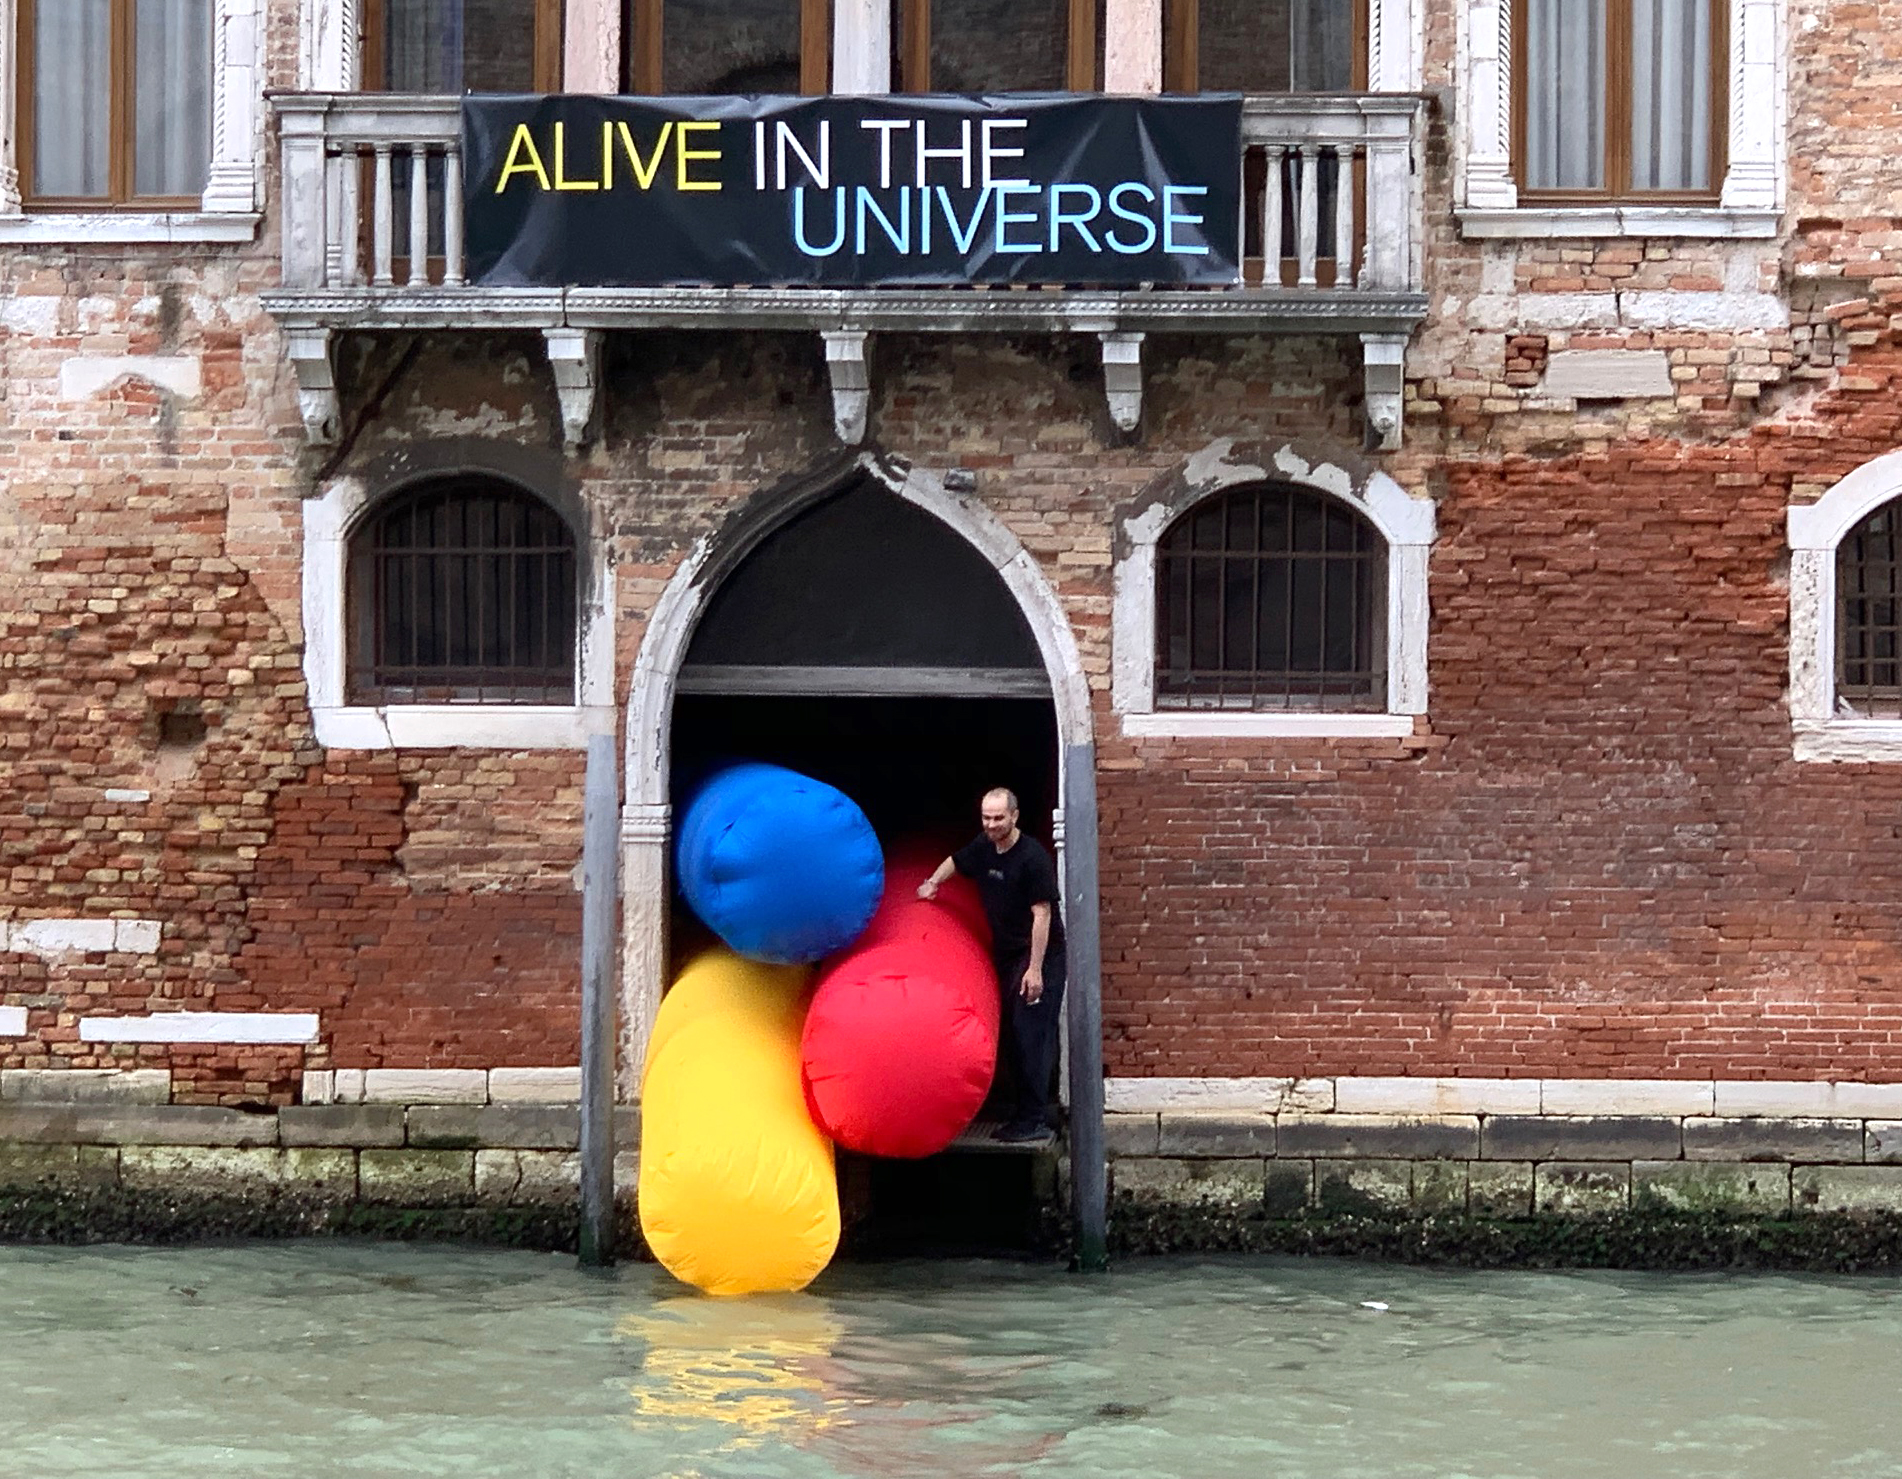 Andrei Costache 'Love' Alive in the Universe 13 May EHWOODS.jpg